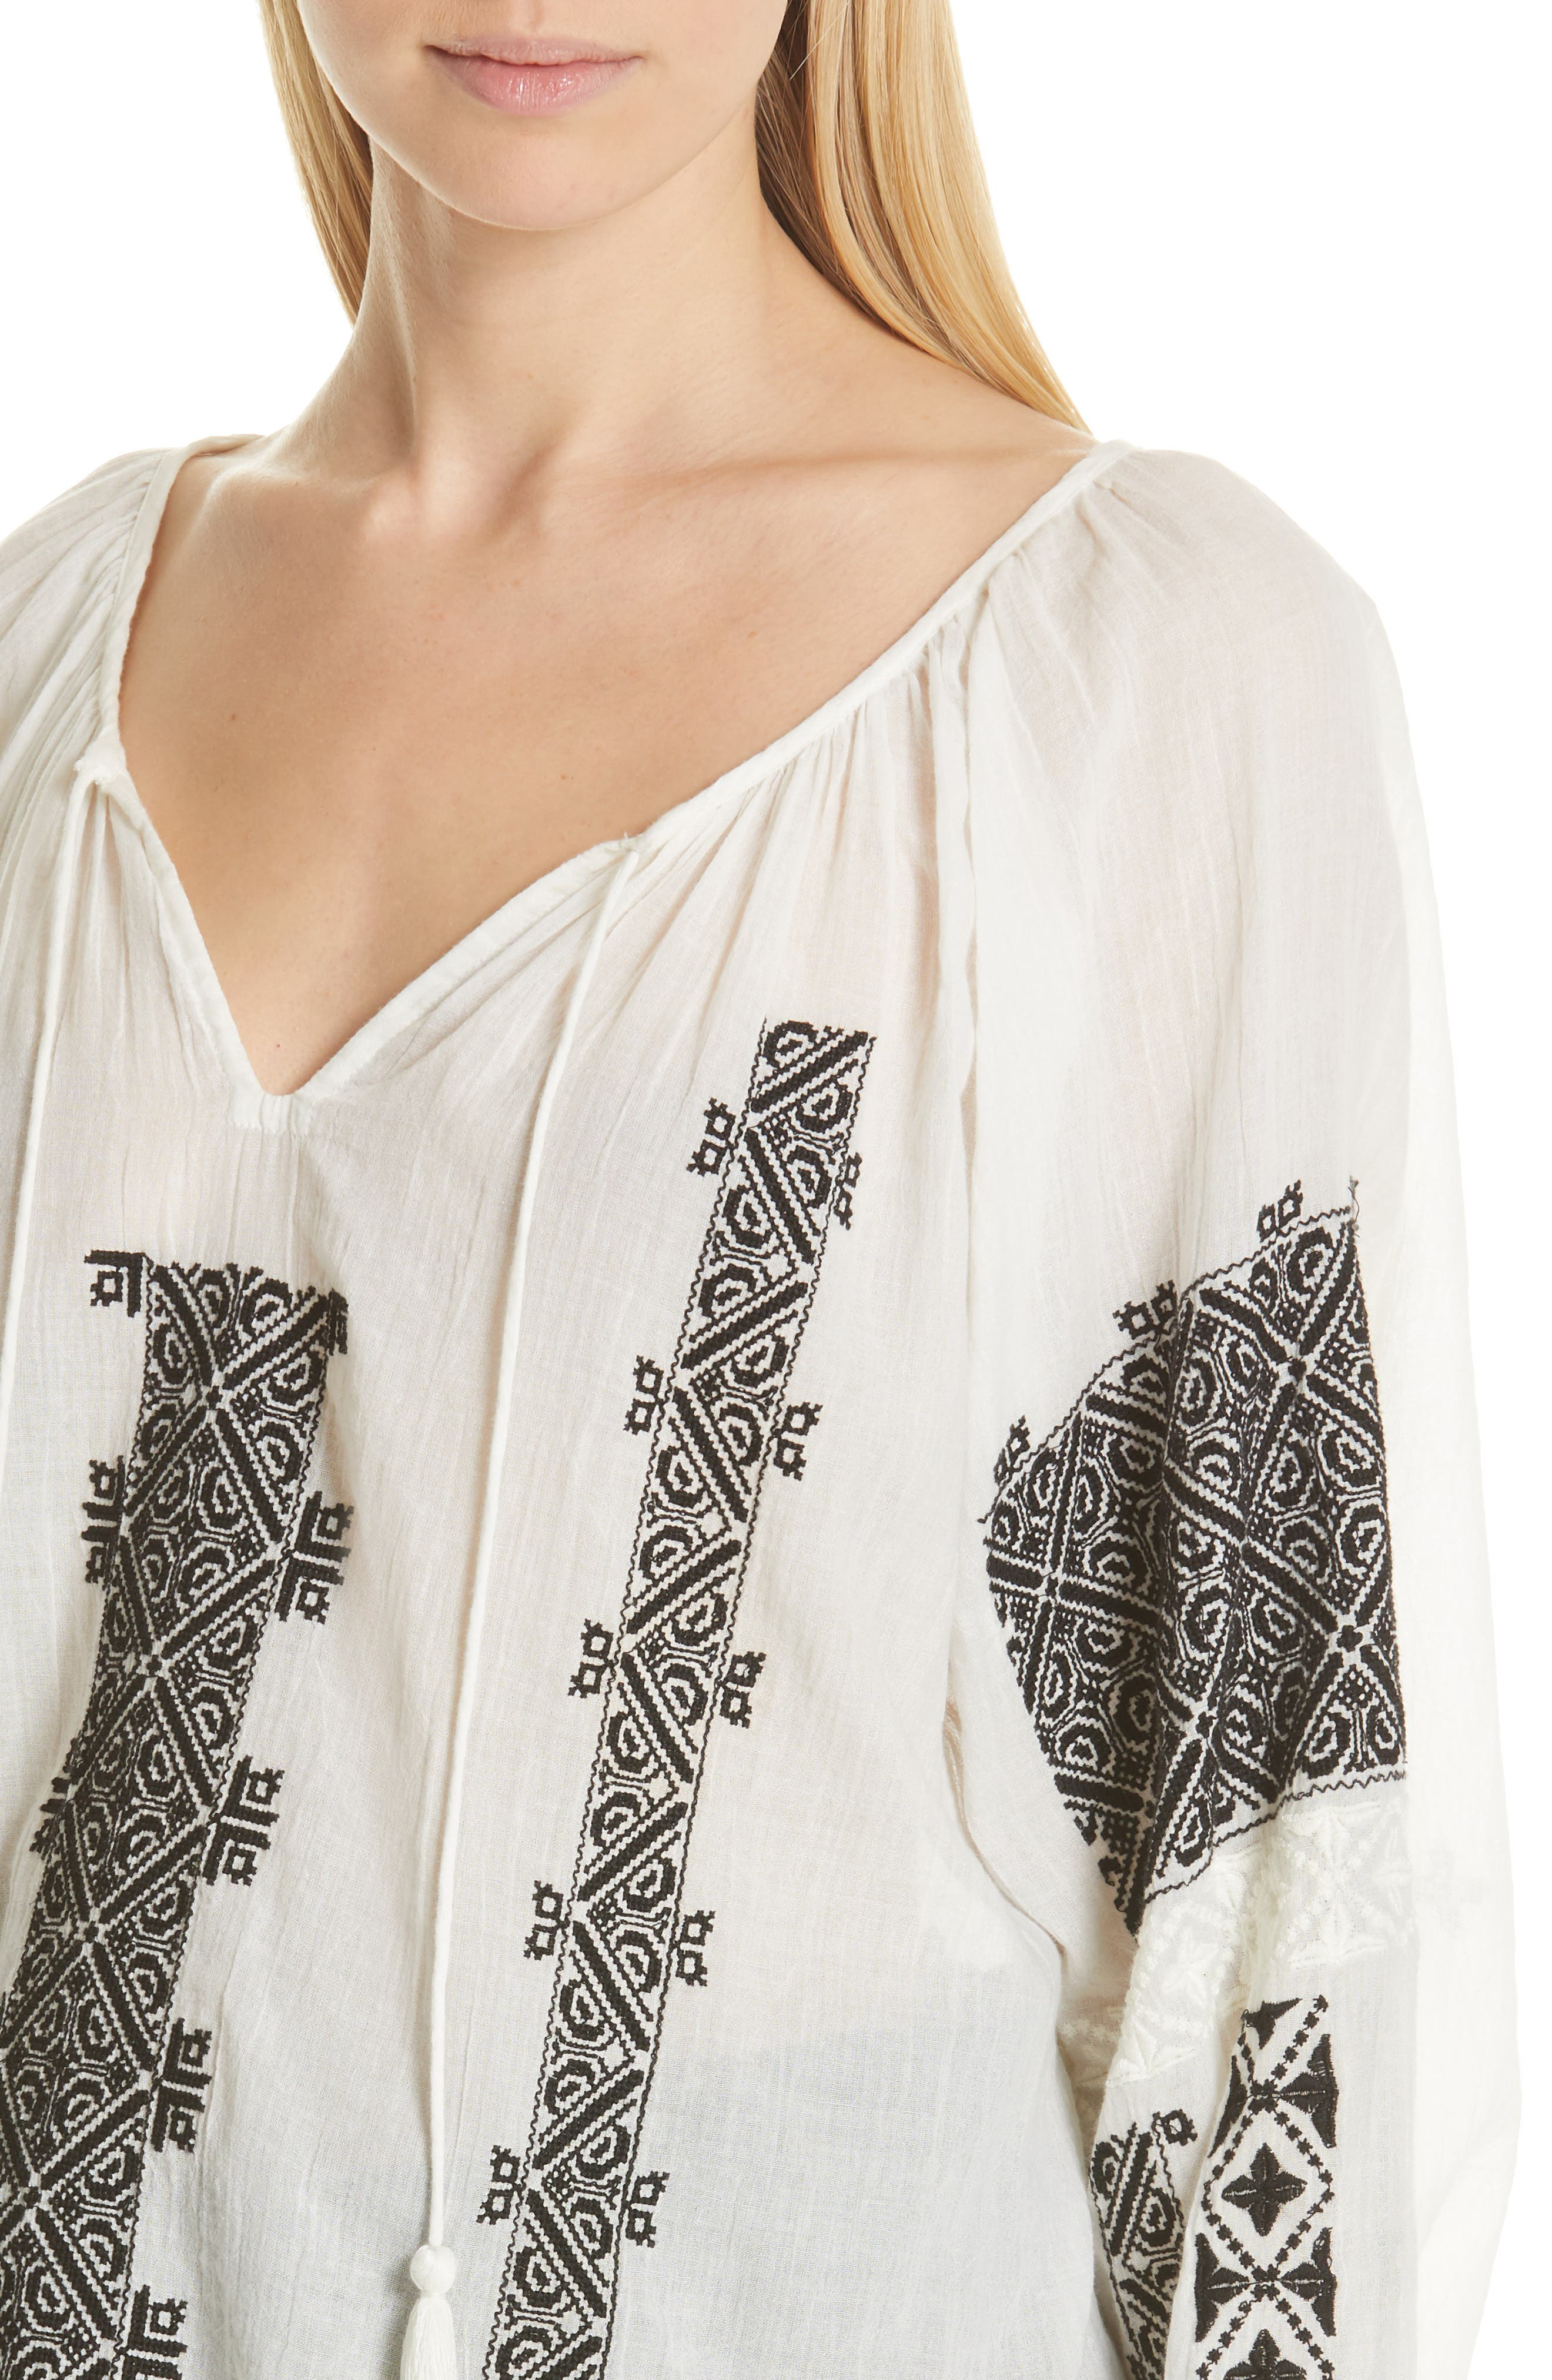 NILI LOTAN, Alassio Embroidered Blouse, Alternate thumbnail 4, color, IVORY WITH BLACK EMBROIDERY